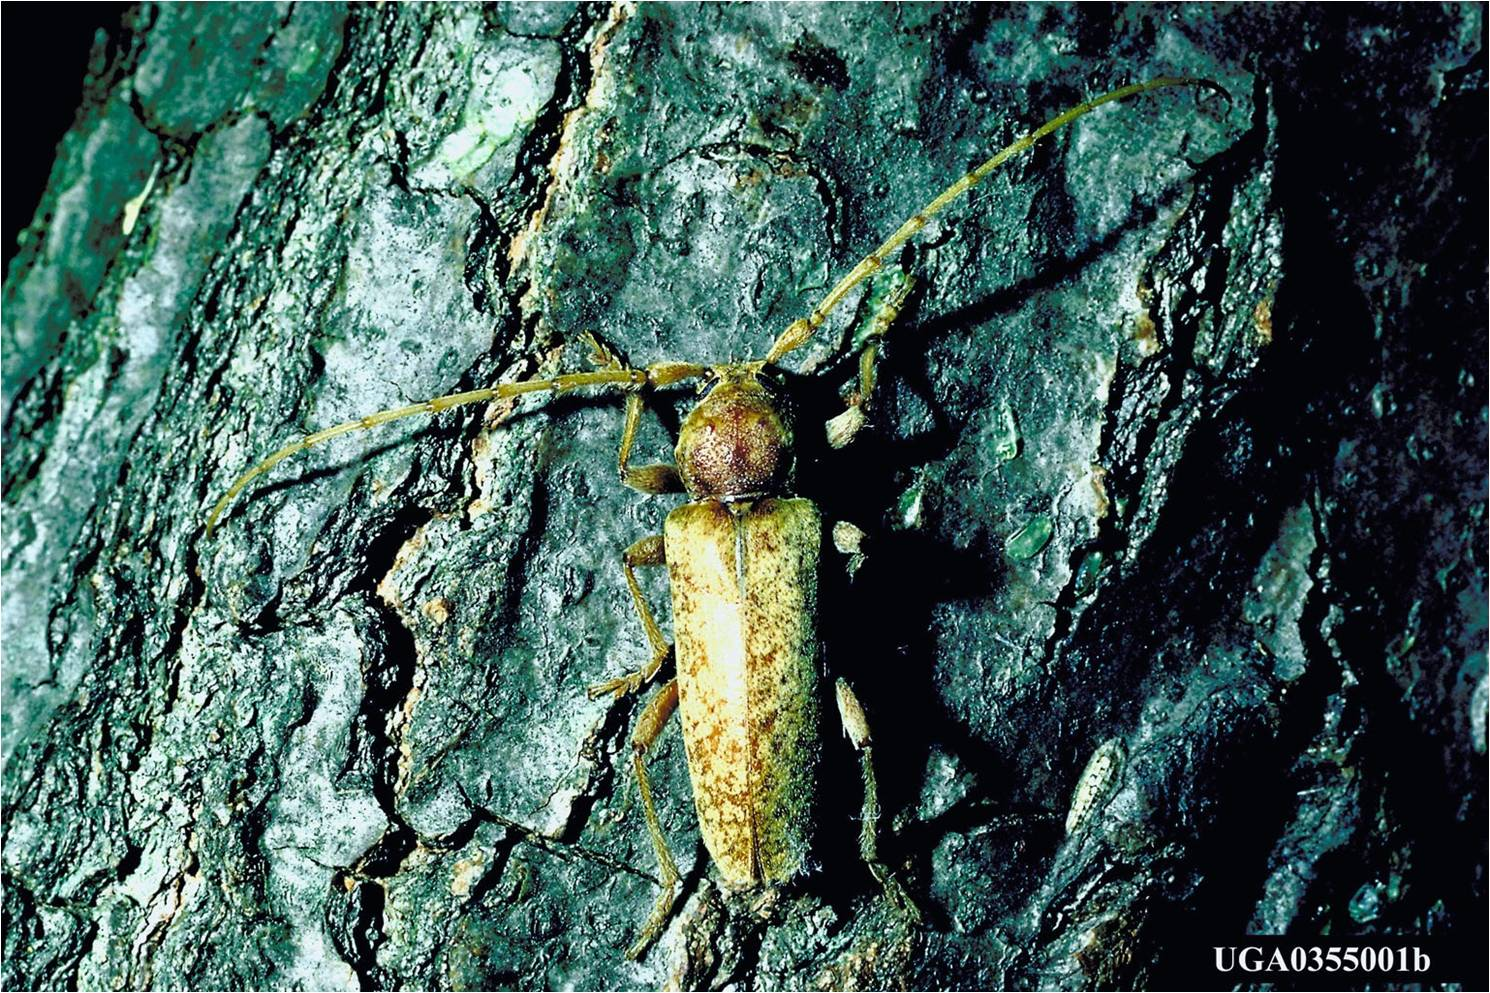 image of a long-horned beetle on an oak tree